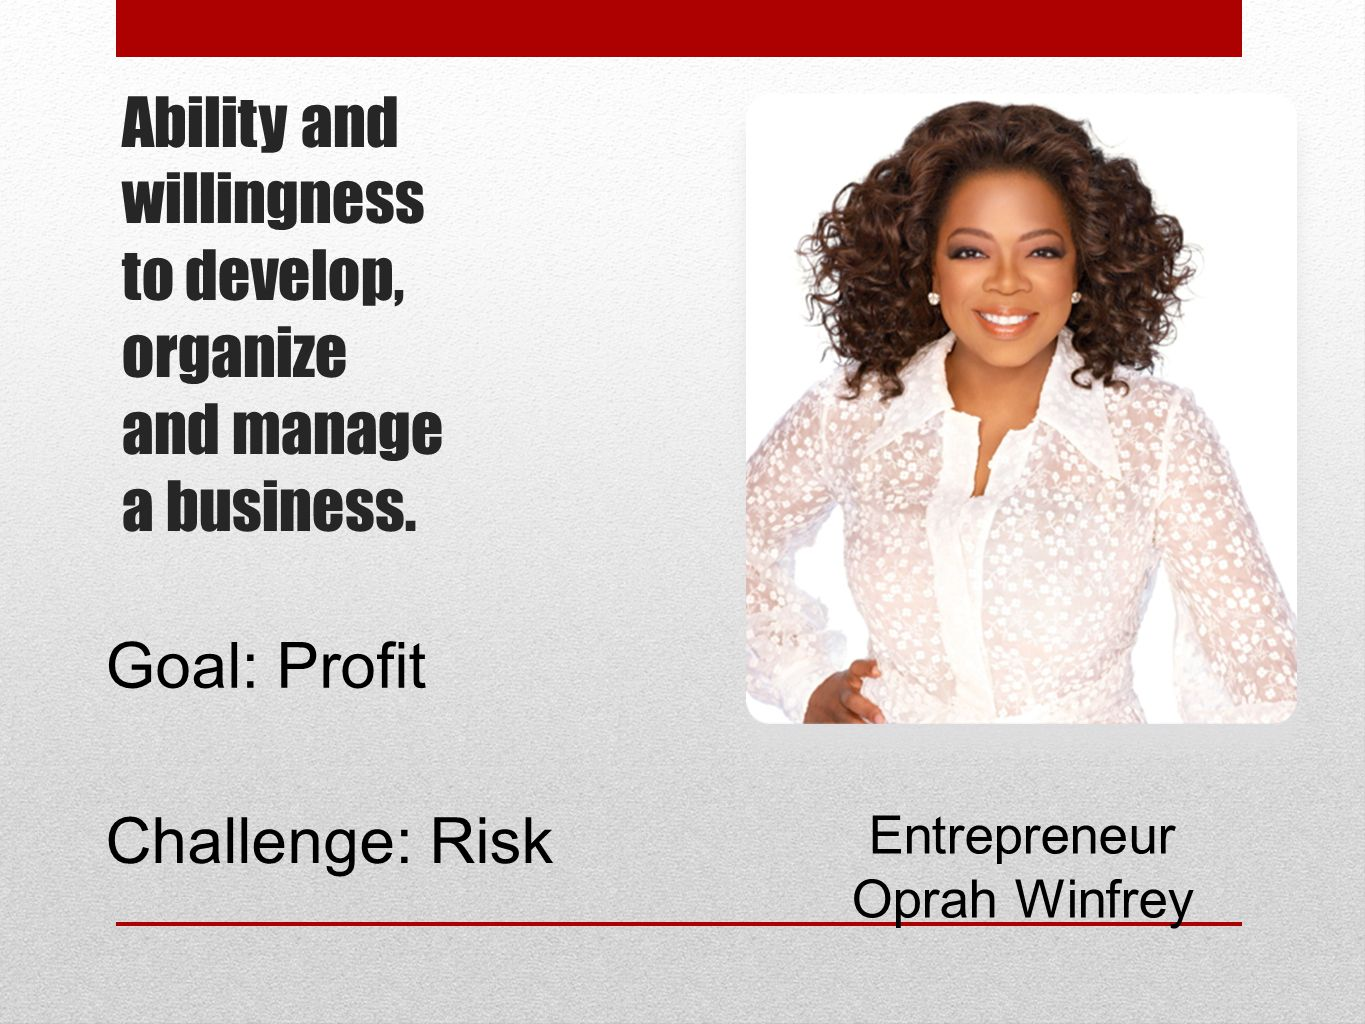 Ability and willingness to develop, organize and manage a business.